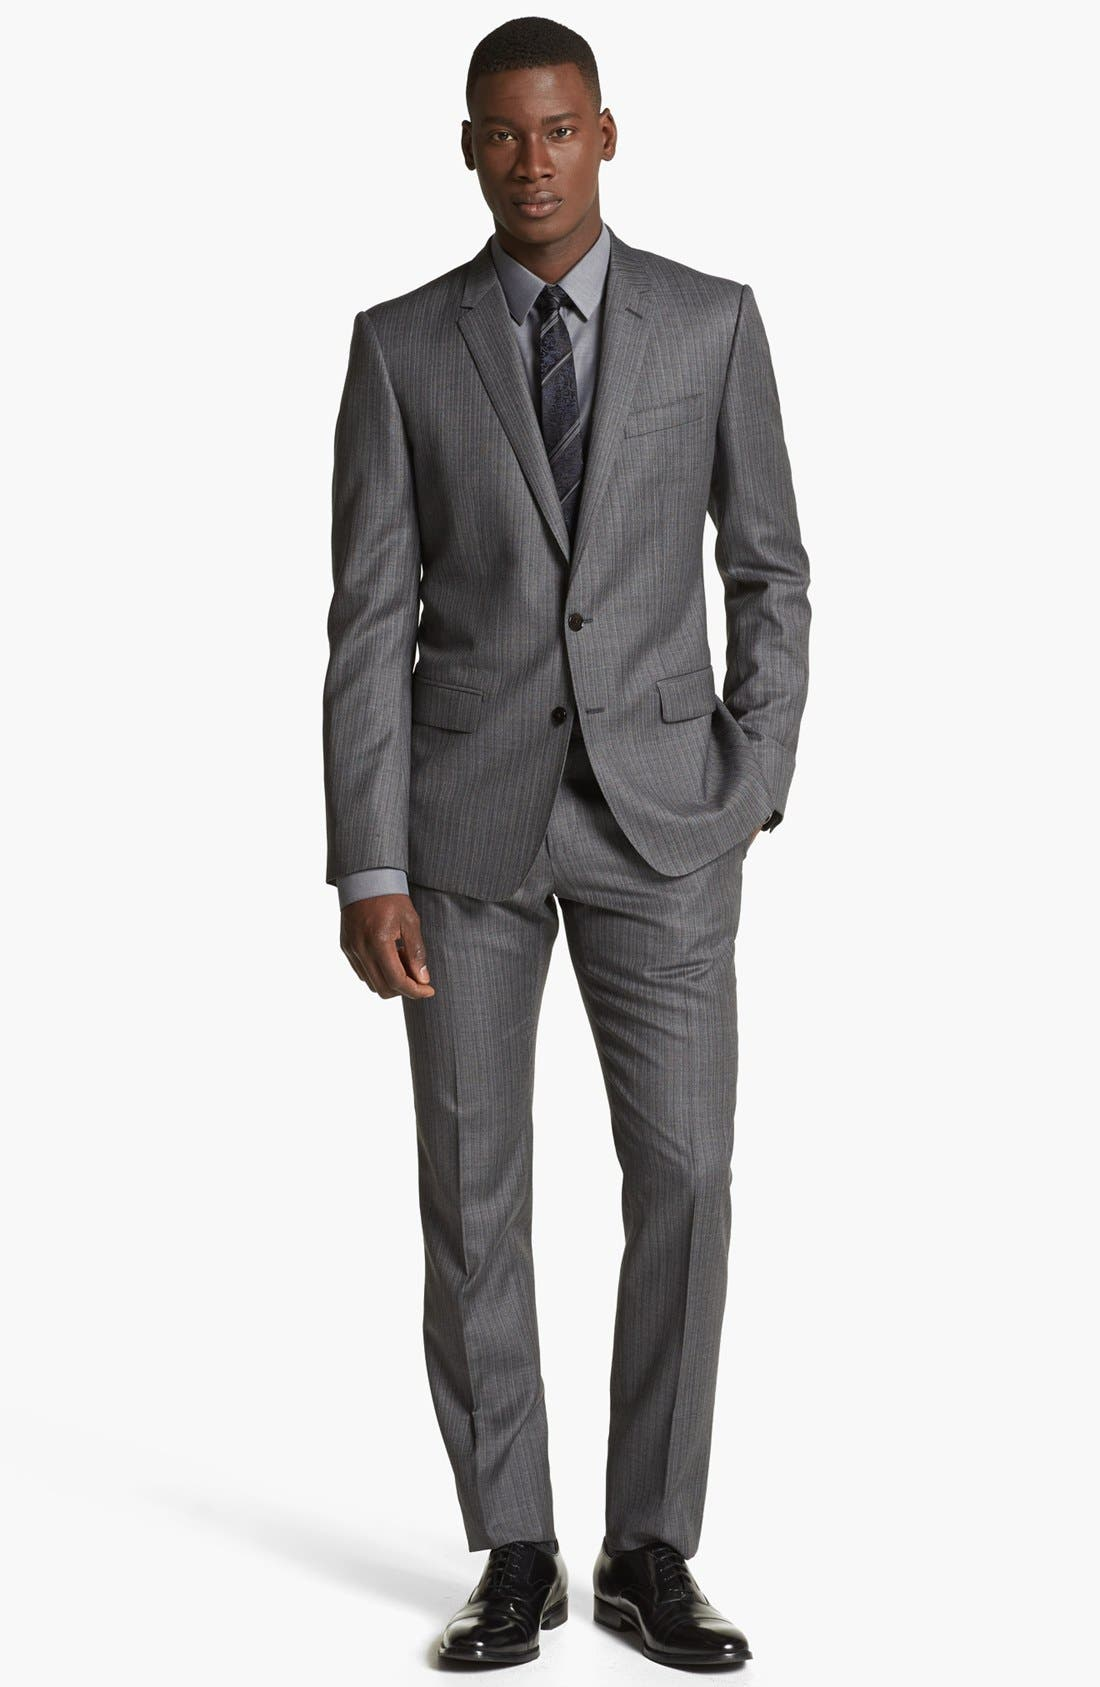 Main Image - Dolce&Gabbana 'Martini' Herringbone Wool Suit